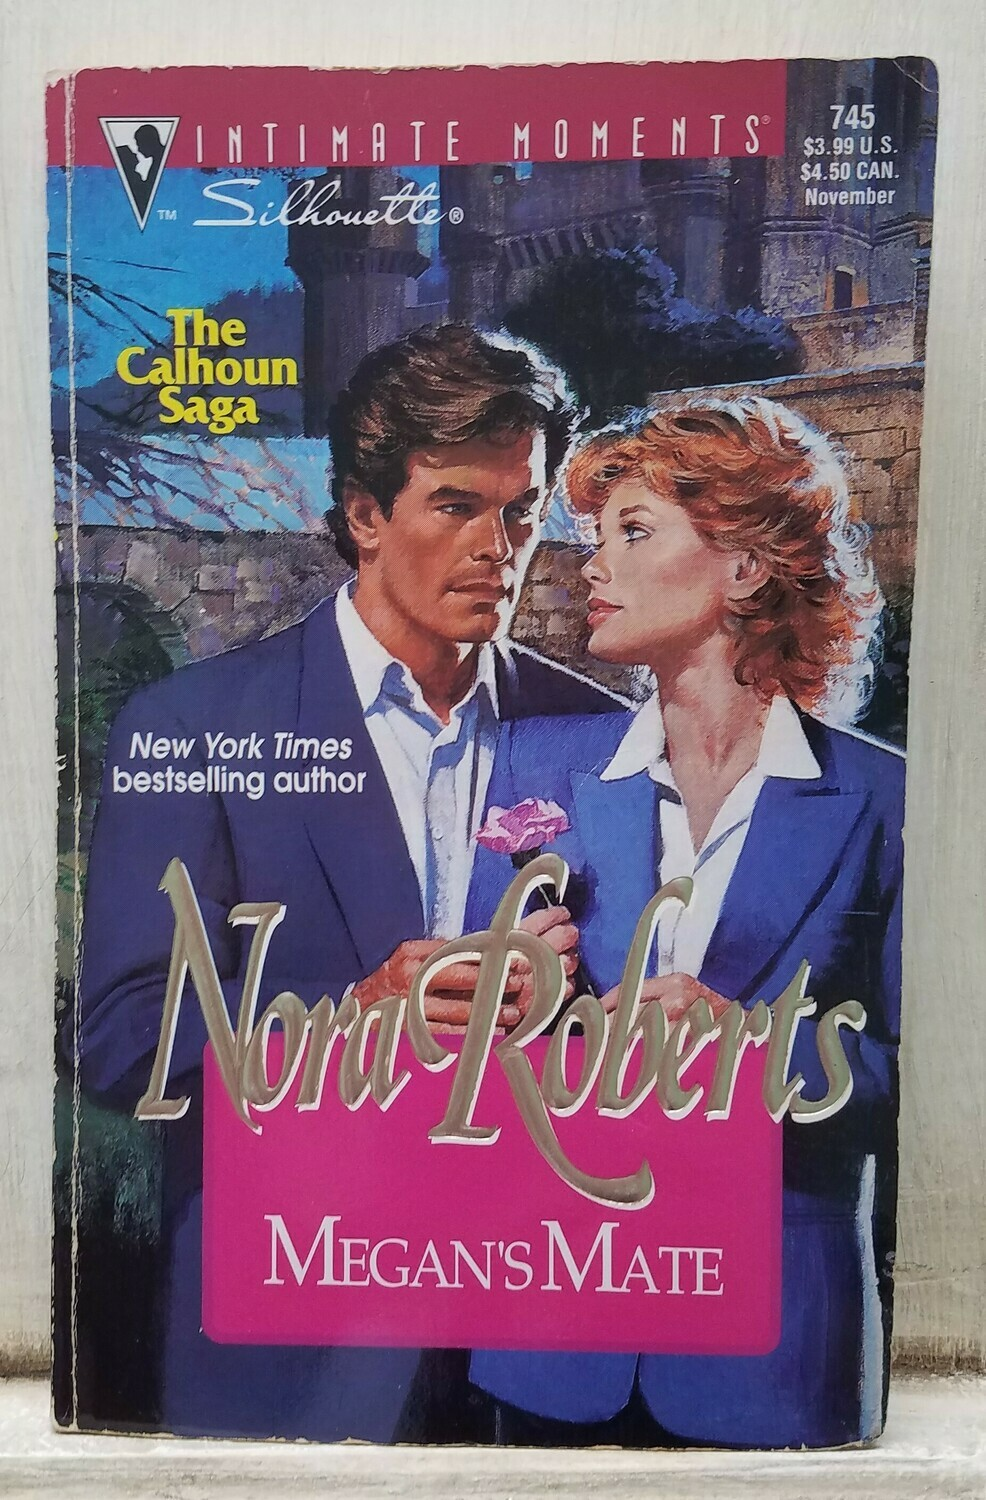 Megan's Mate by Nora Roberts